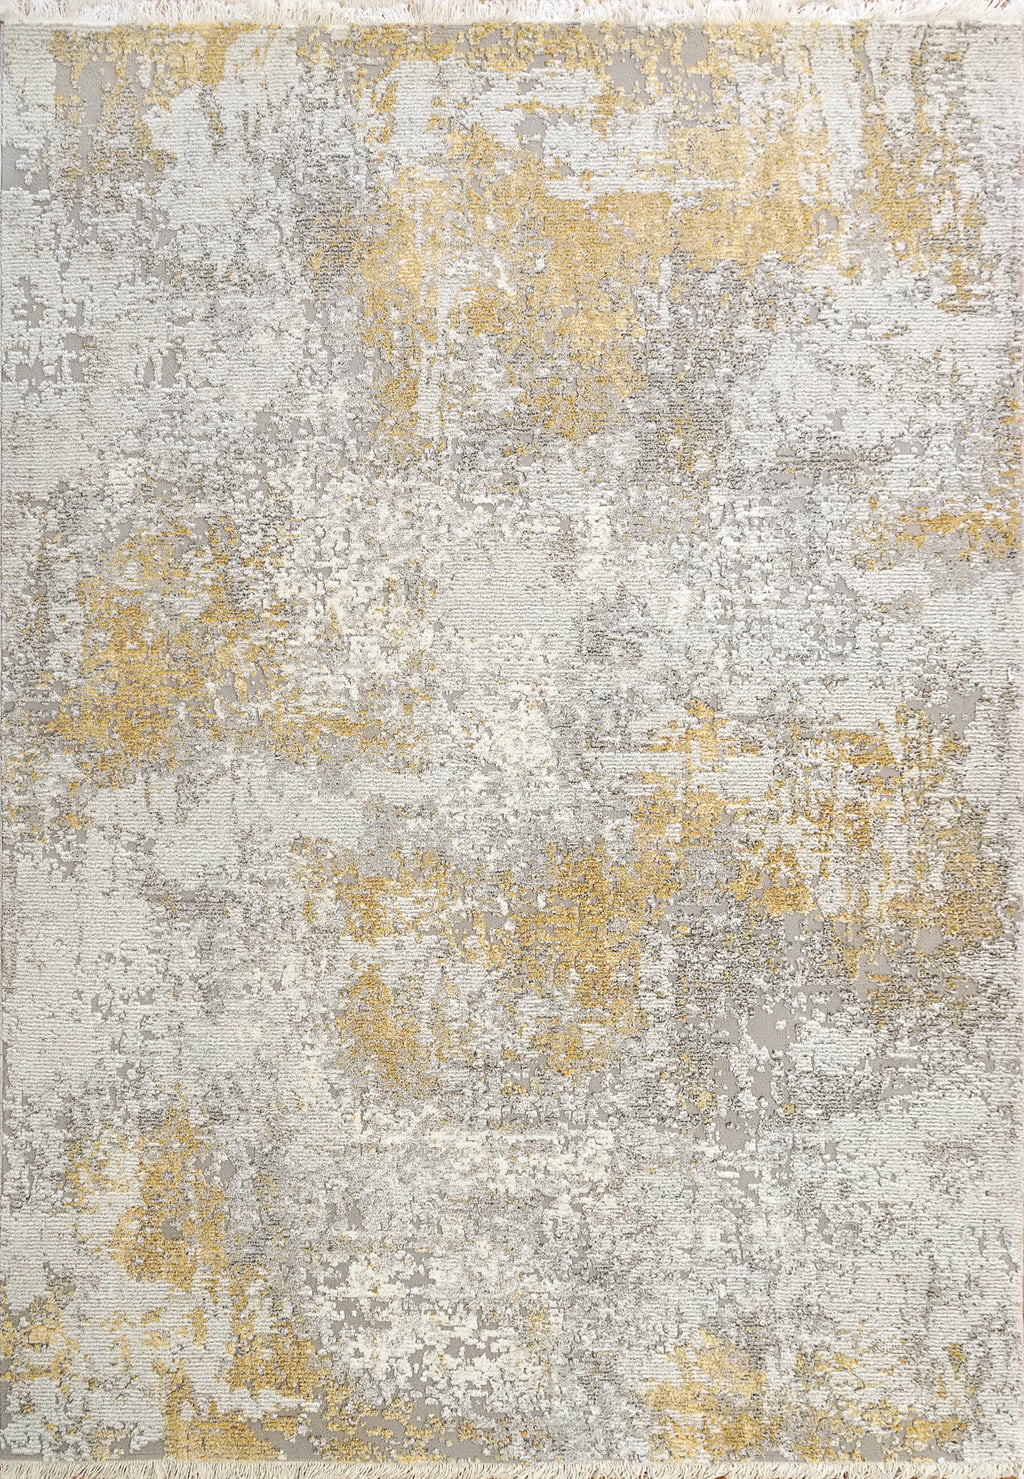 Angelo Surmelis Collection - Nola Rug 1037 (Grey/Gold)